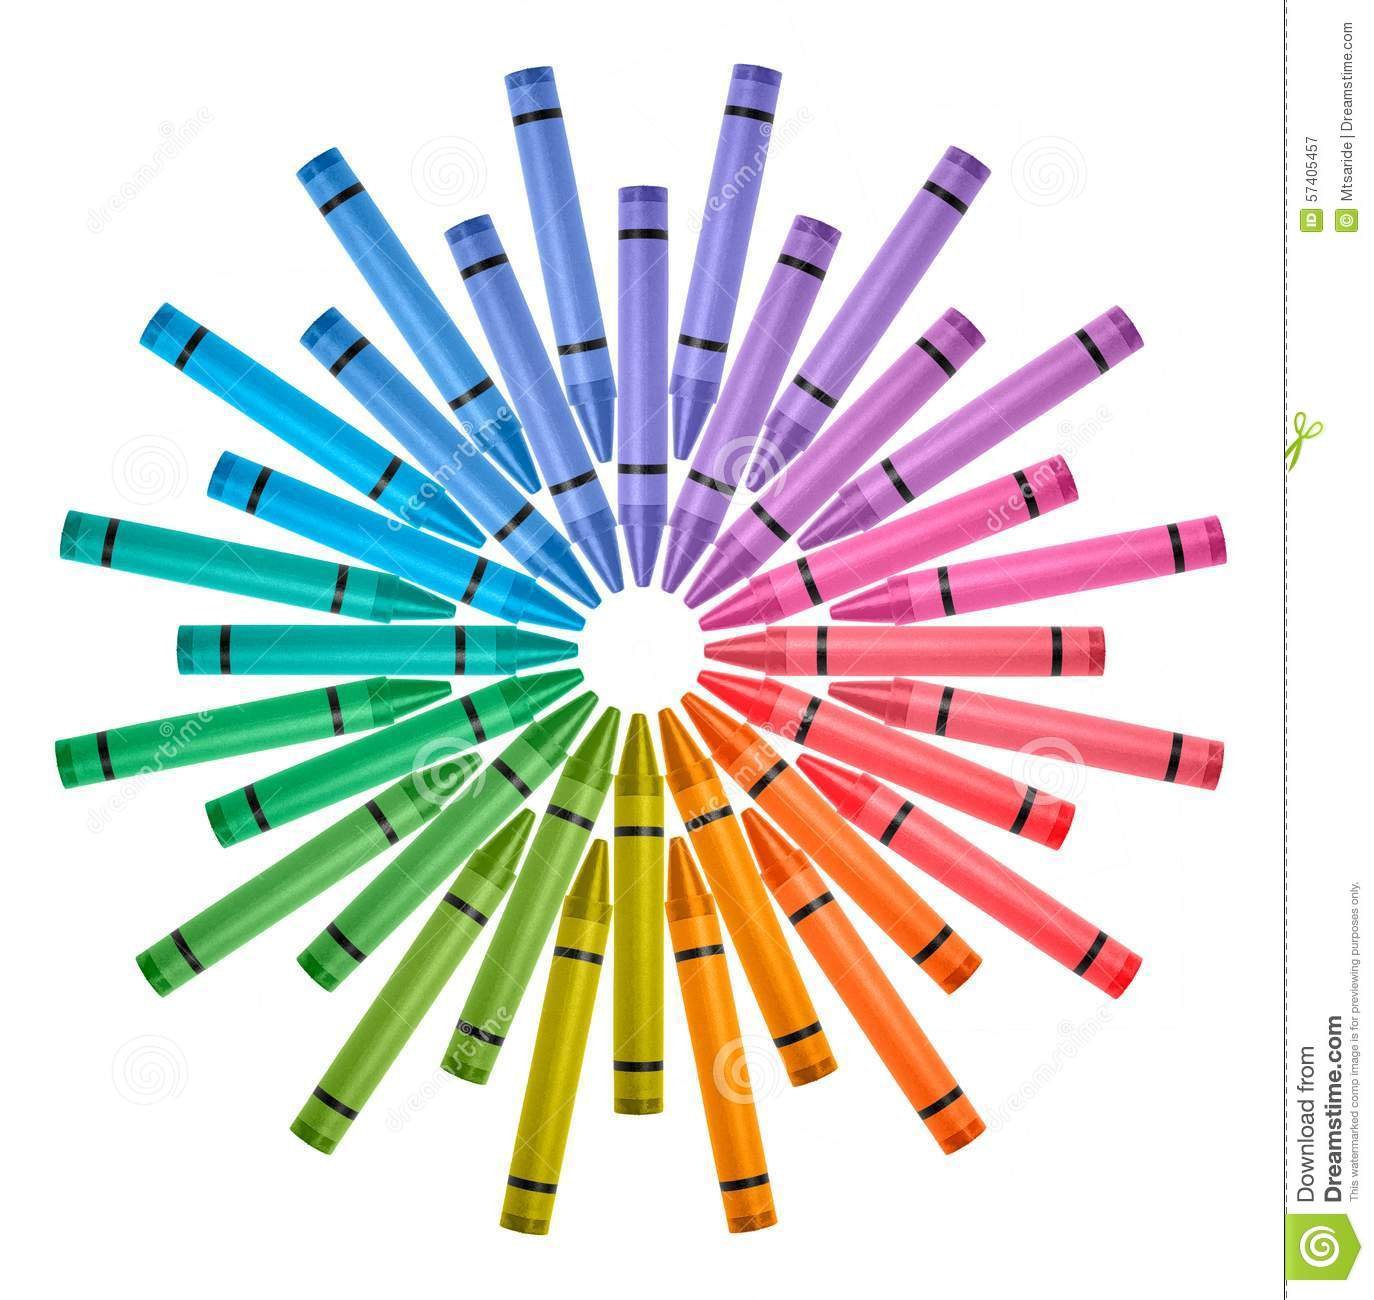 Crayon Colored Circle : Colored crayons color wheel stock image